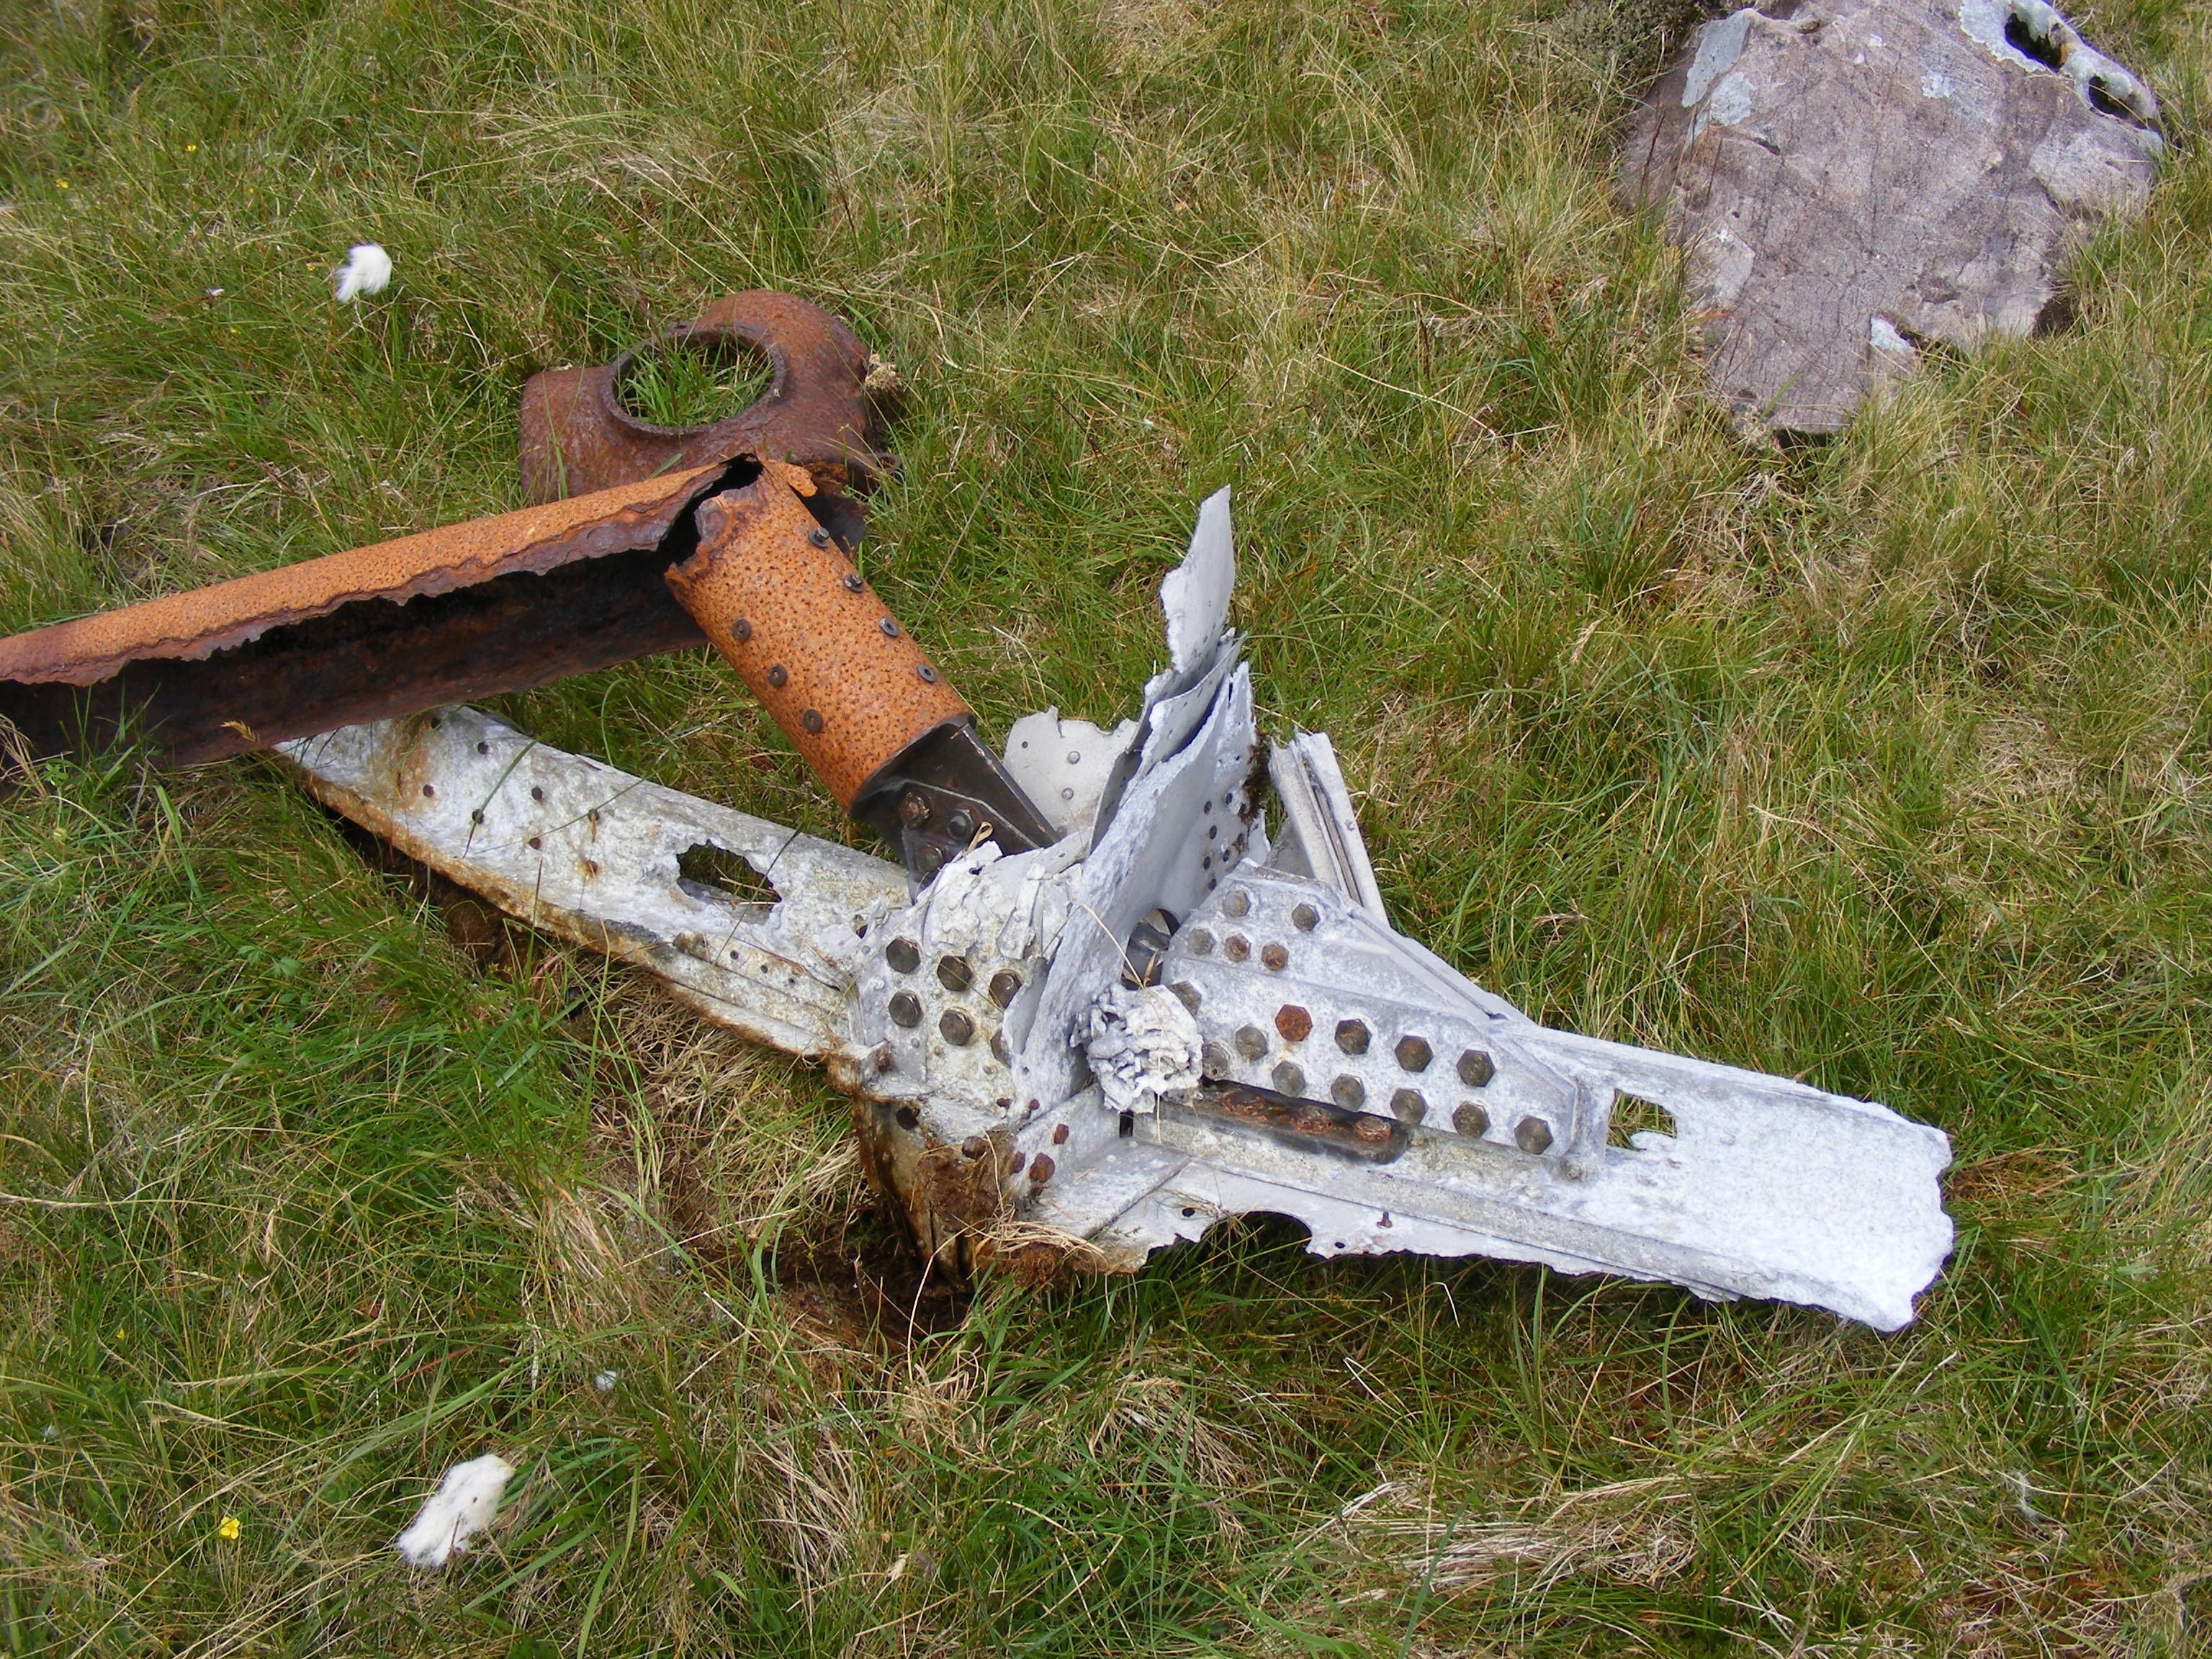 A piece of aircraft structure in the grass next               to the rocks.